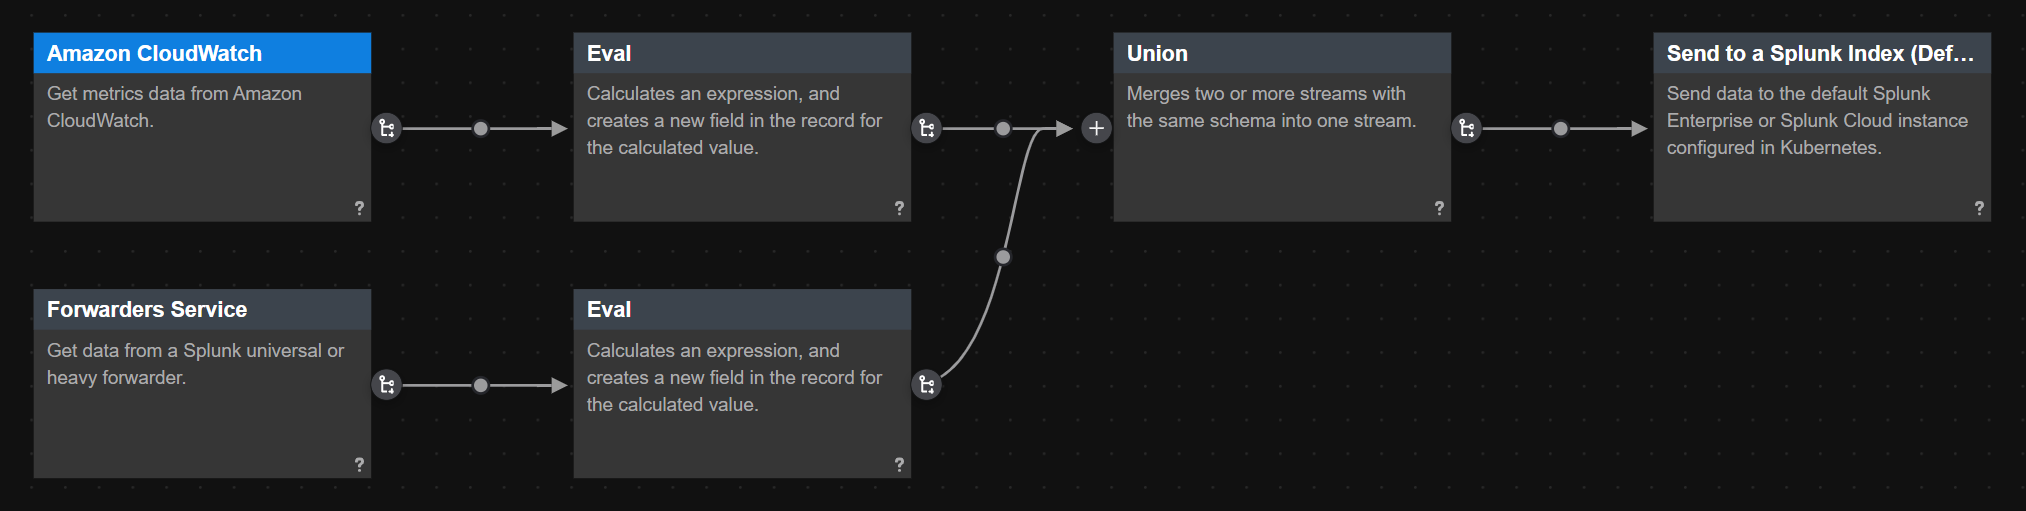 This screen image shows two data streams from two different data sources being unioned together in a pipeline.